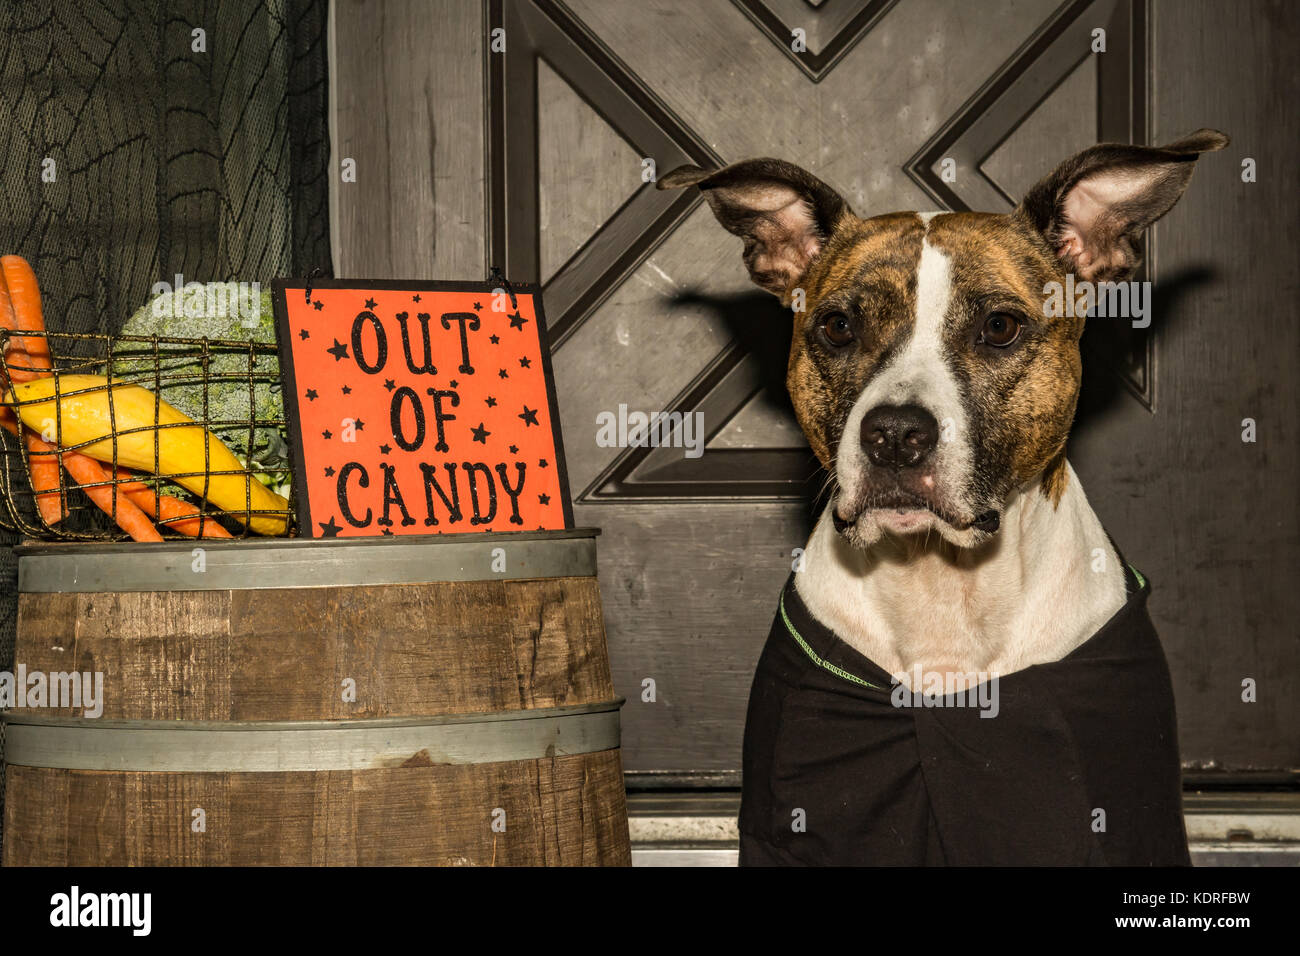 Out of Halloween Candy - Stock Image